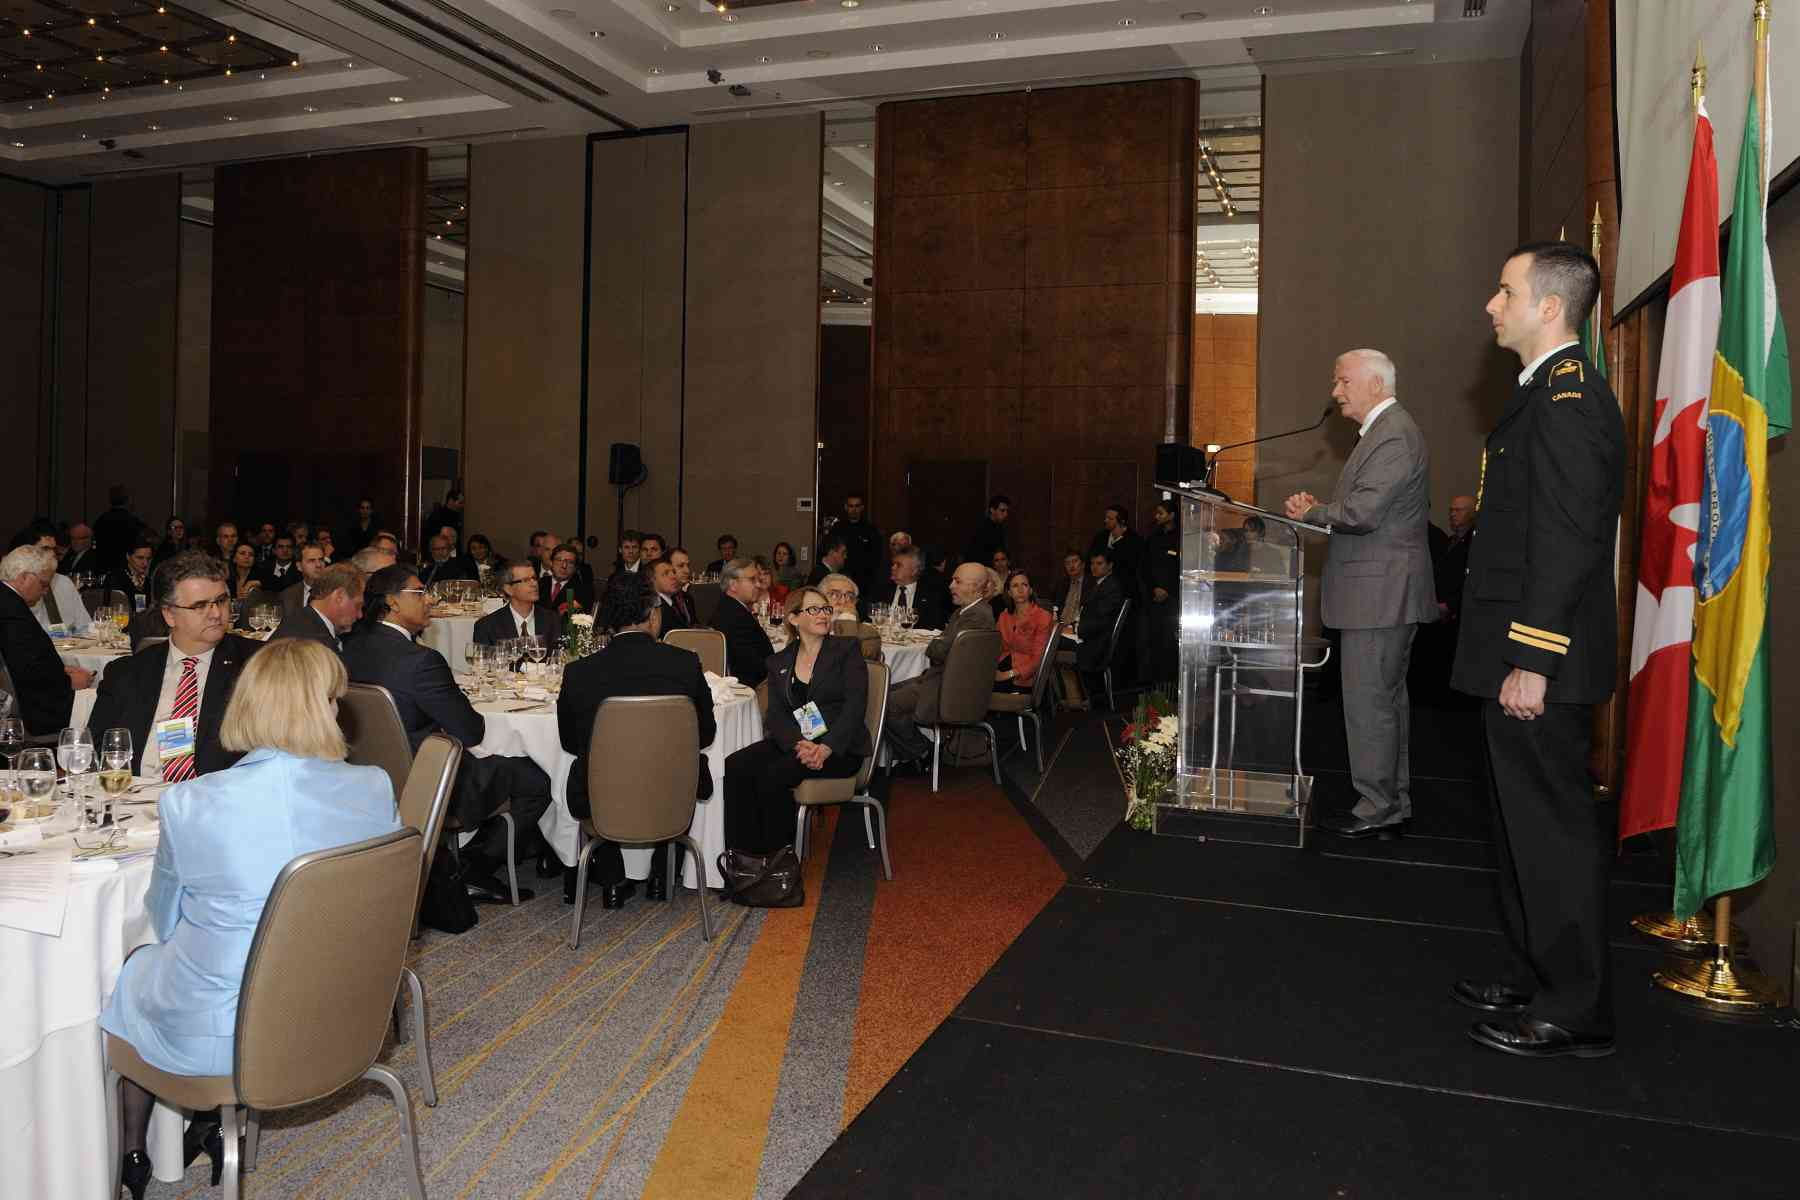 His Excellency and the Canadian delegation attended a luncheon with business leaders, opinion makers, members of academia and politicians from the city of São Paulo and from across Brazil. The Governor General delivered remarks on this occasion.